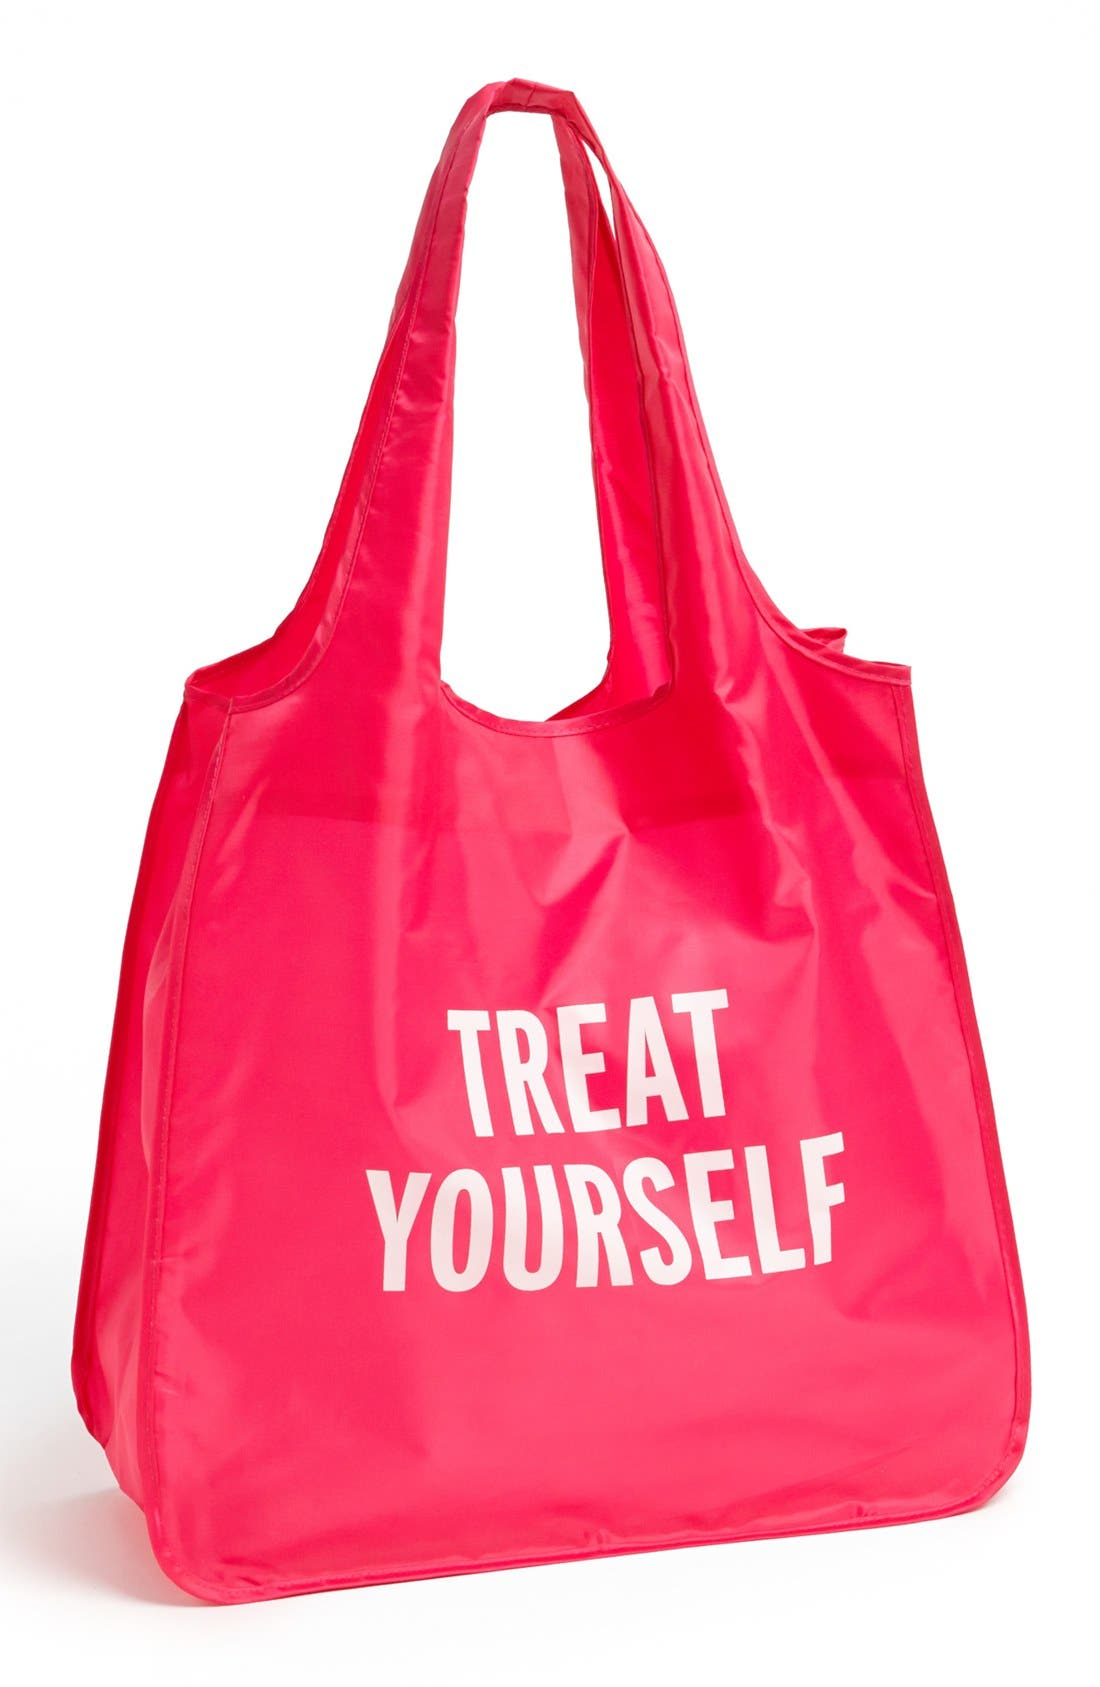 KATE SPADE NEW YORK, 'treat yourself' reusable shopping tote, Main thumbnail 1, color, 650